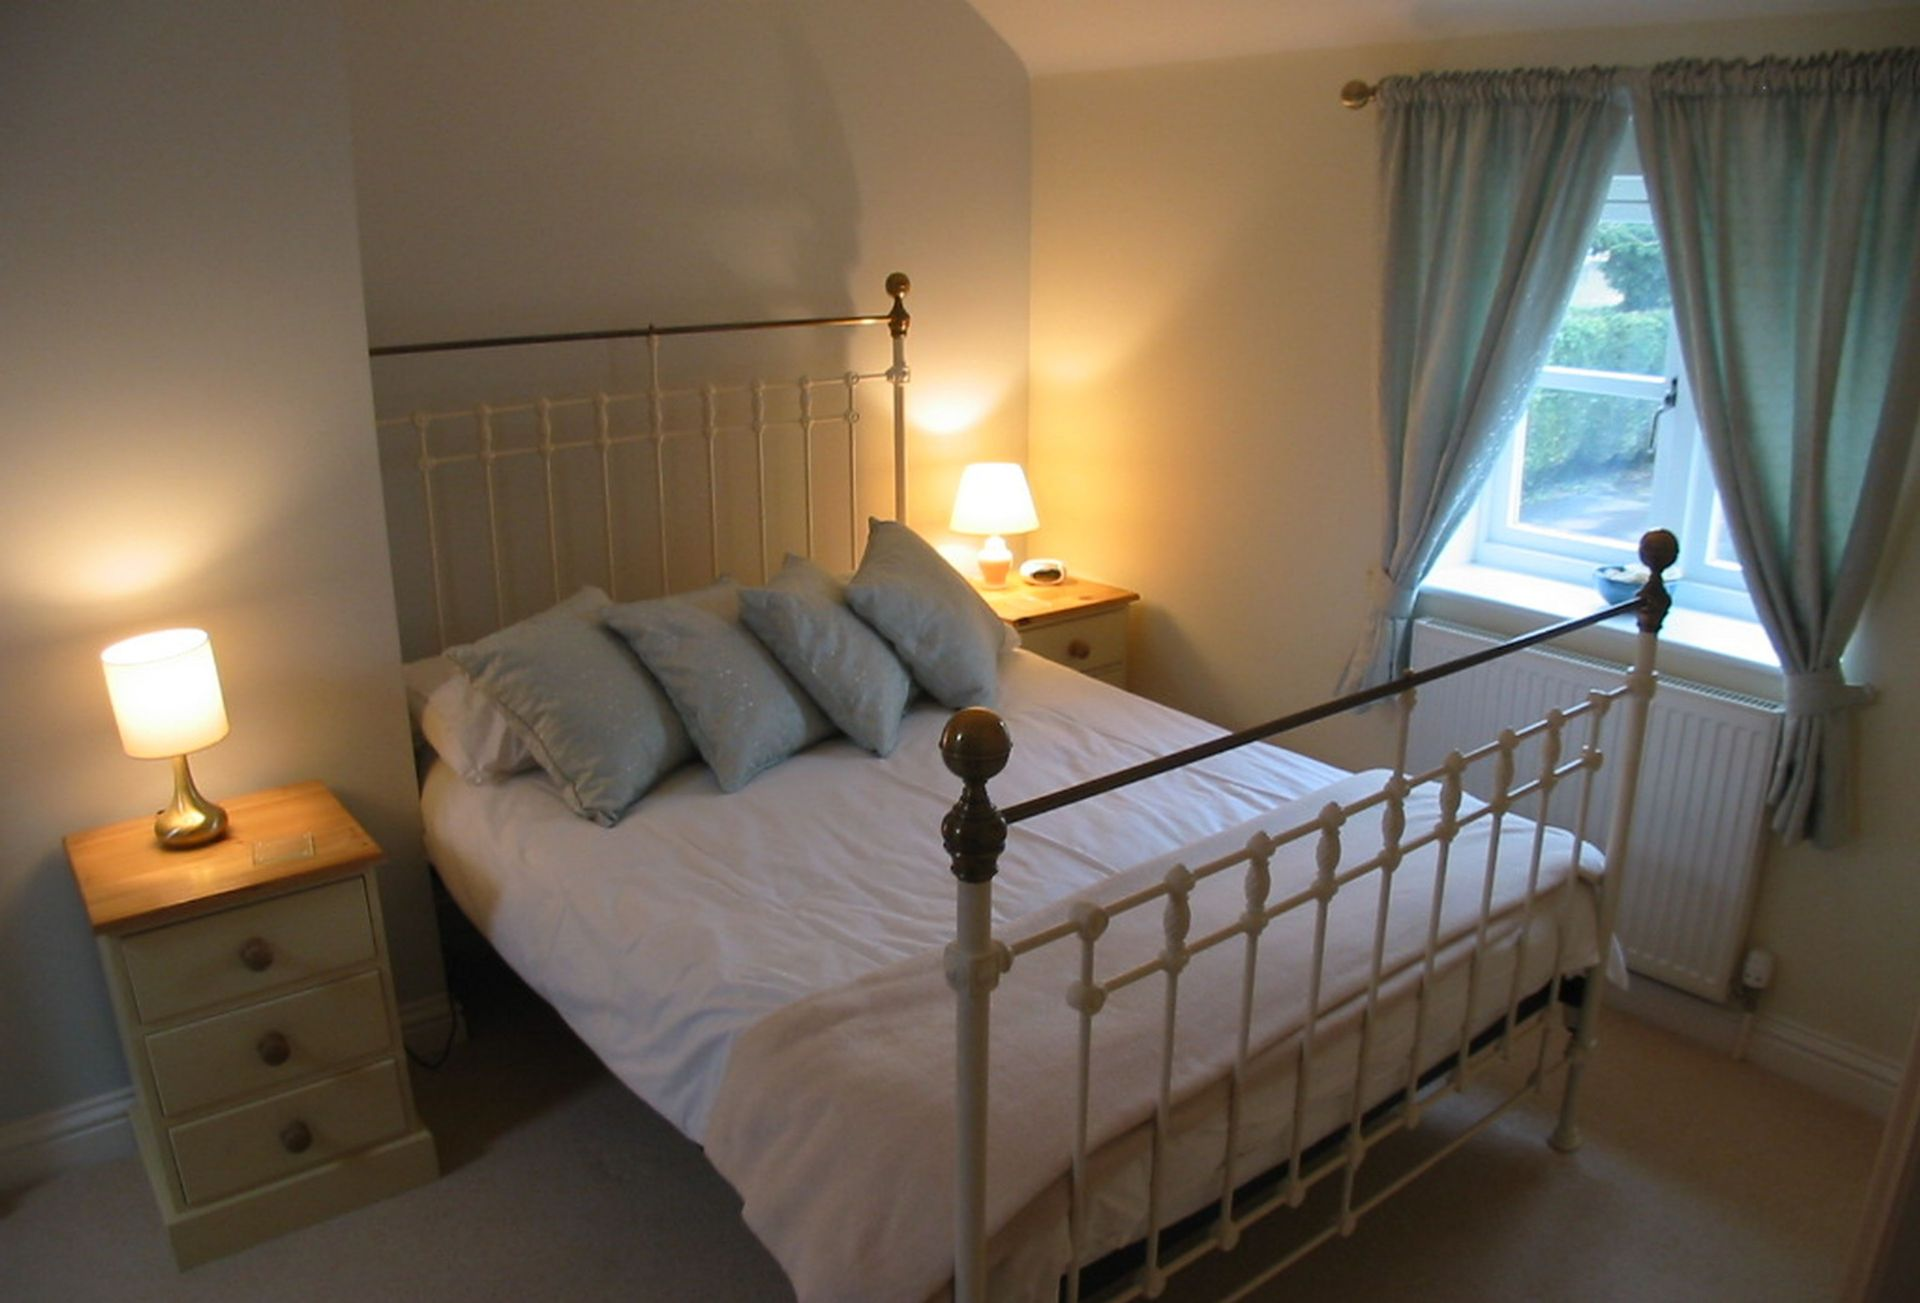 First floor: Bedroom one with double bed